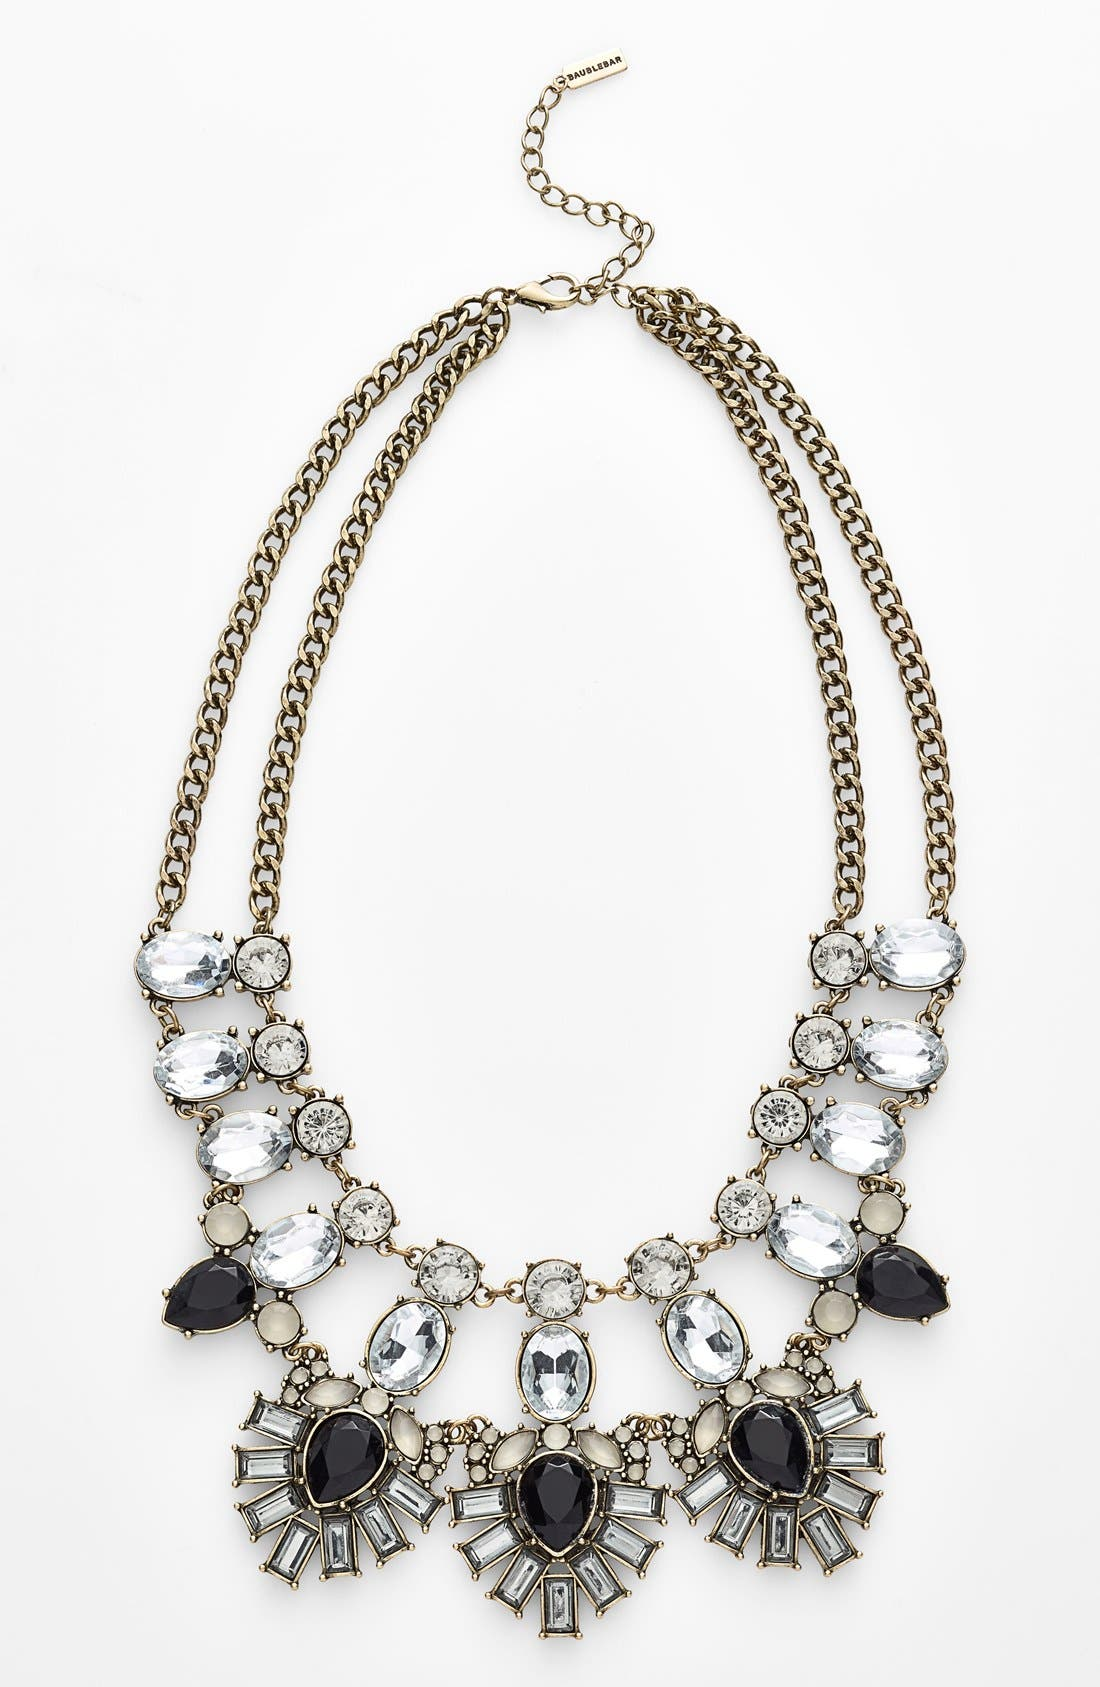 'Drama' Mixed Stone Statement Necklace,                             Main thumbnail 1, color,                             001